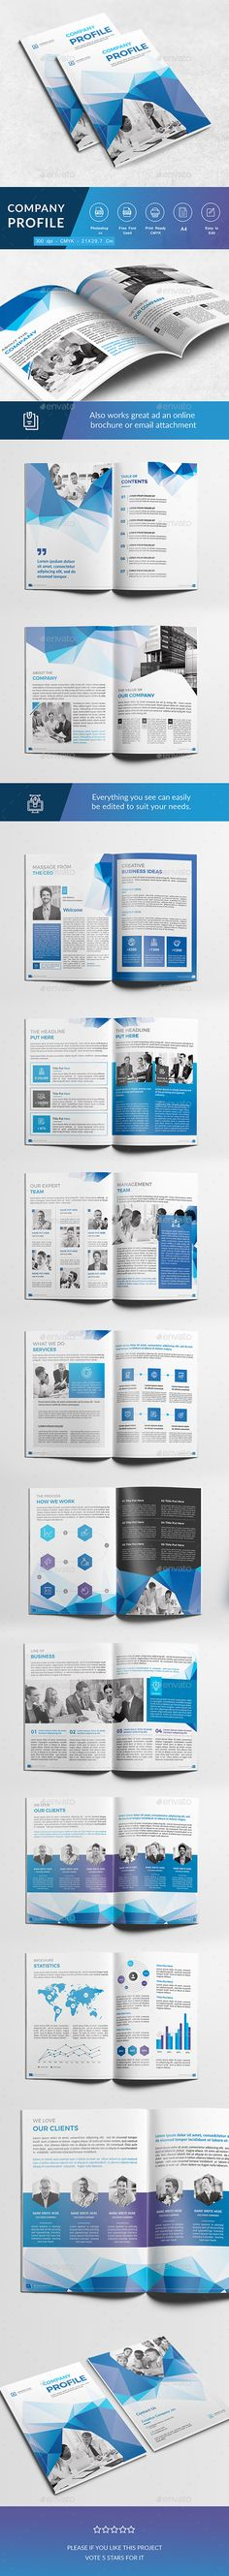 Multipurpose Company Profile \u2014 InDesign Template \u2022 Only available